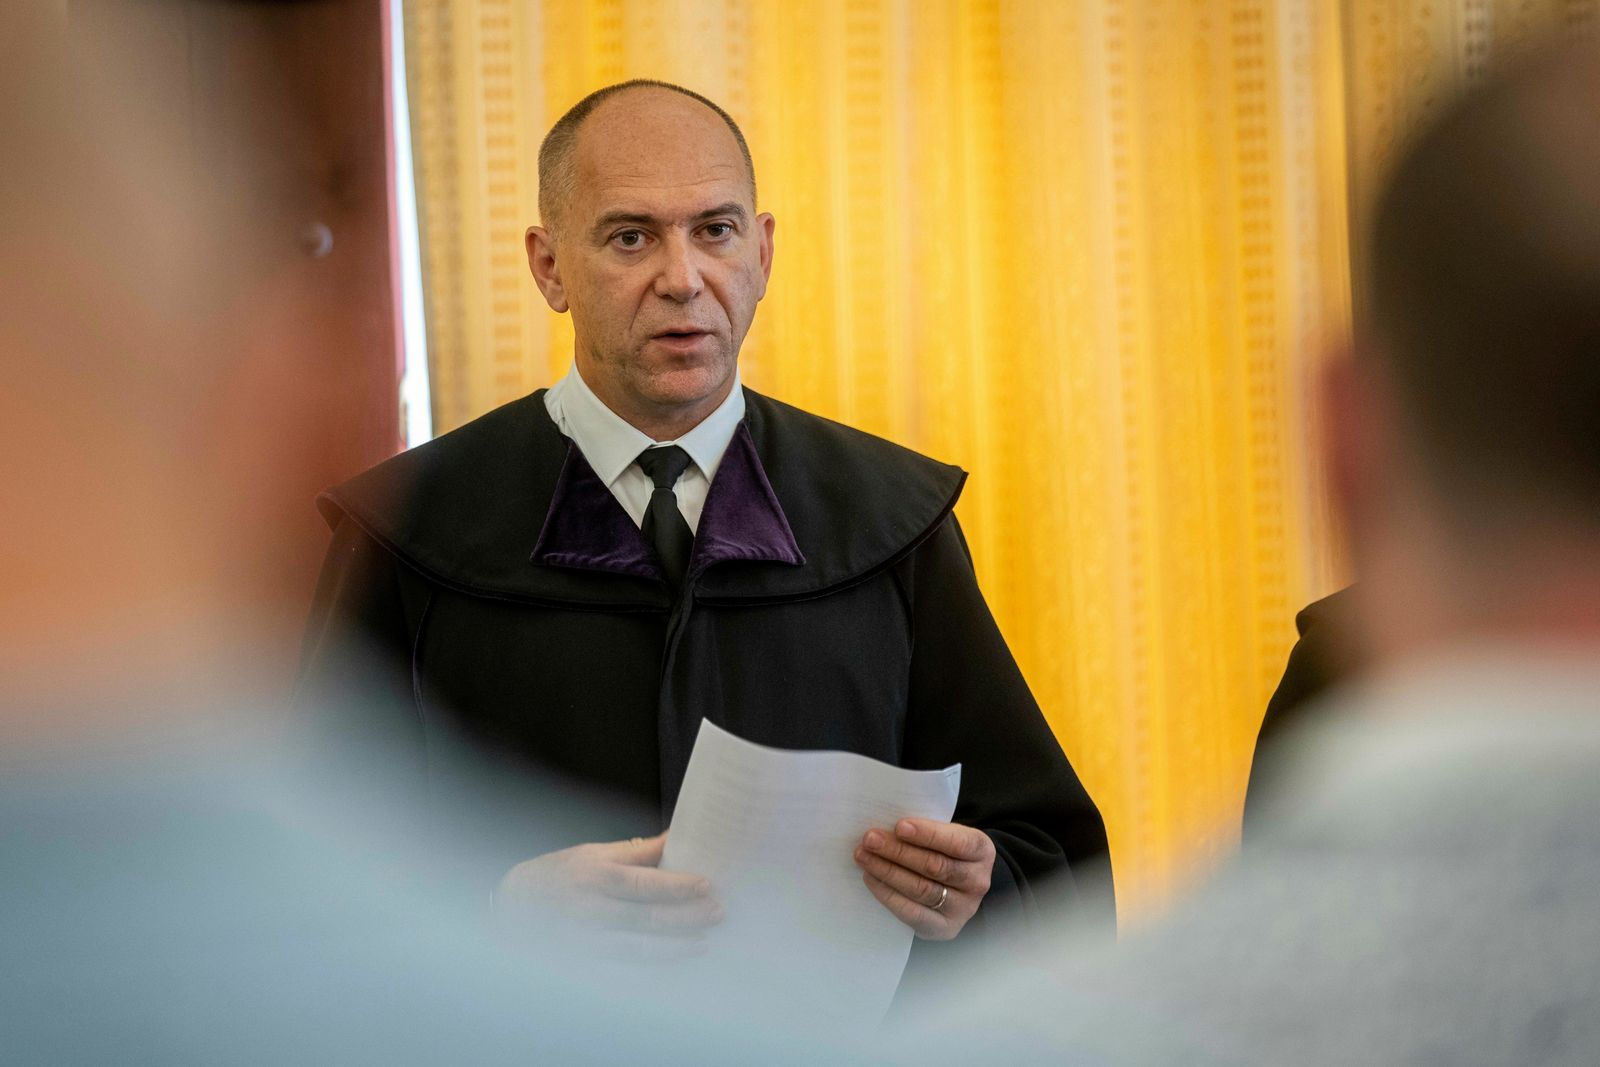 Judge Erik Mezolaki announces the second verdict in the migrant smuggling case known as the Parndorf-case in the Court of Appeal of Szeged in Szeged, southern Hungary, Thursday, June 20, 2019. (Tibor Rosta/MTI via AP)